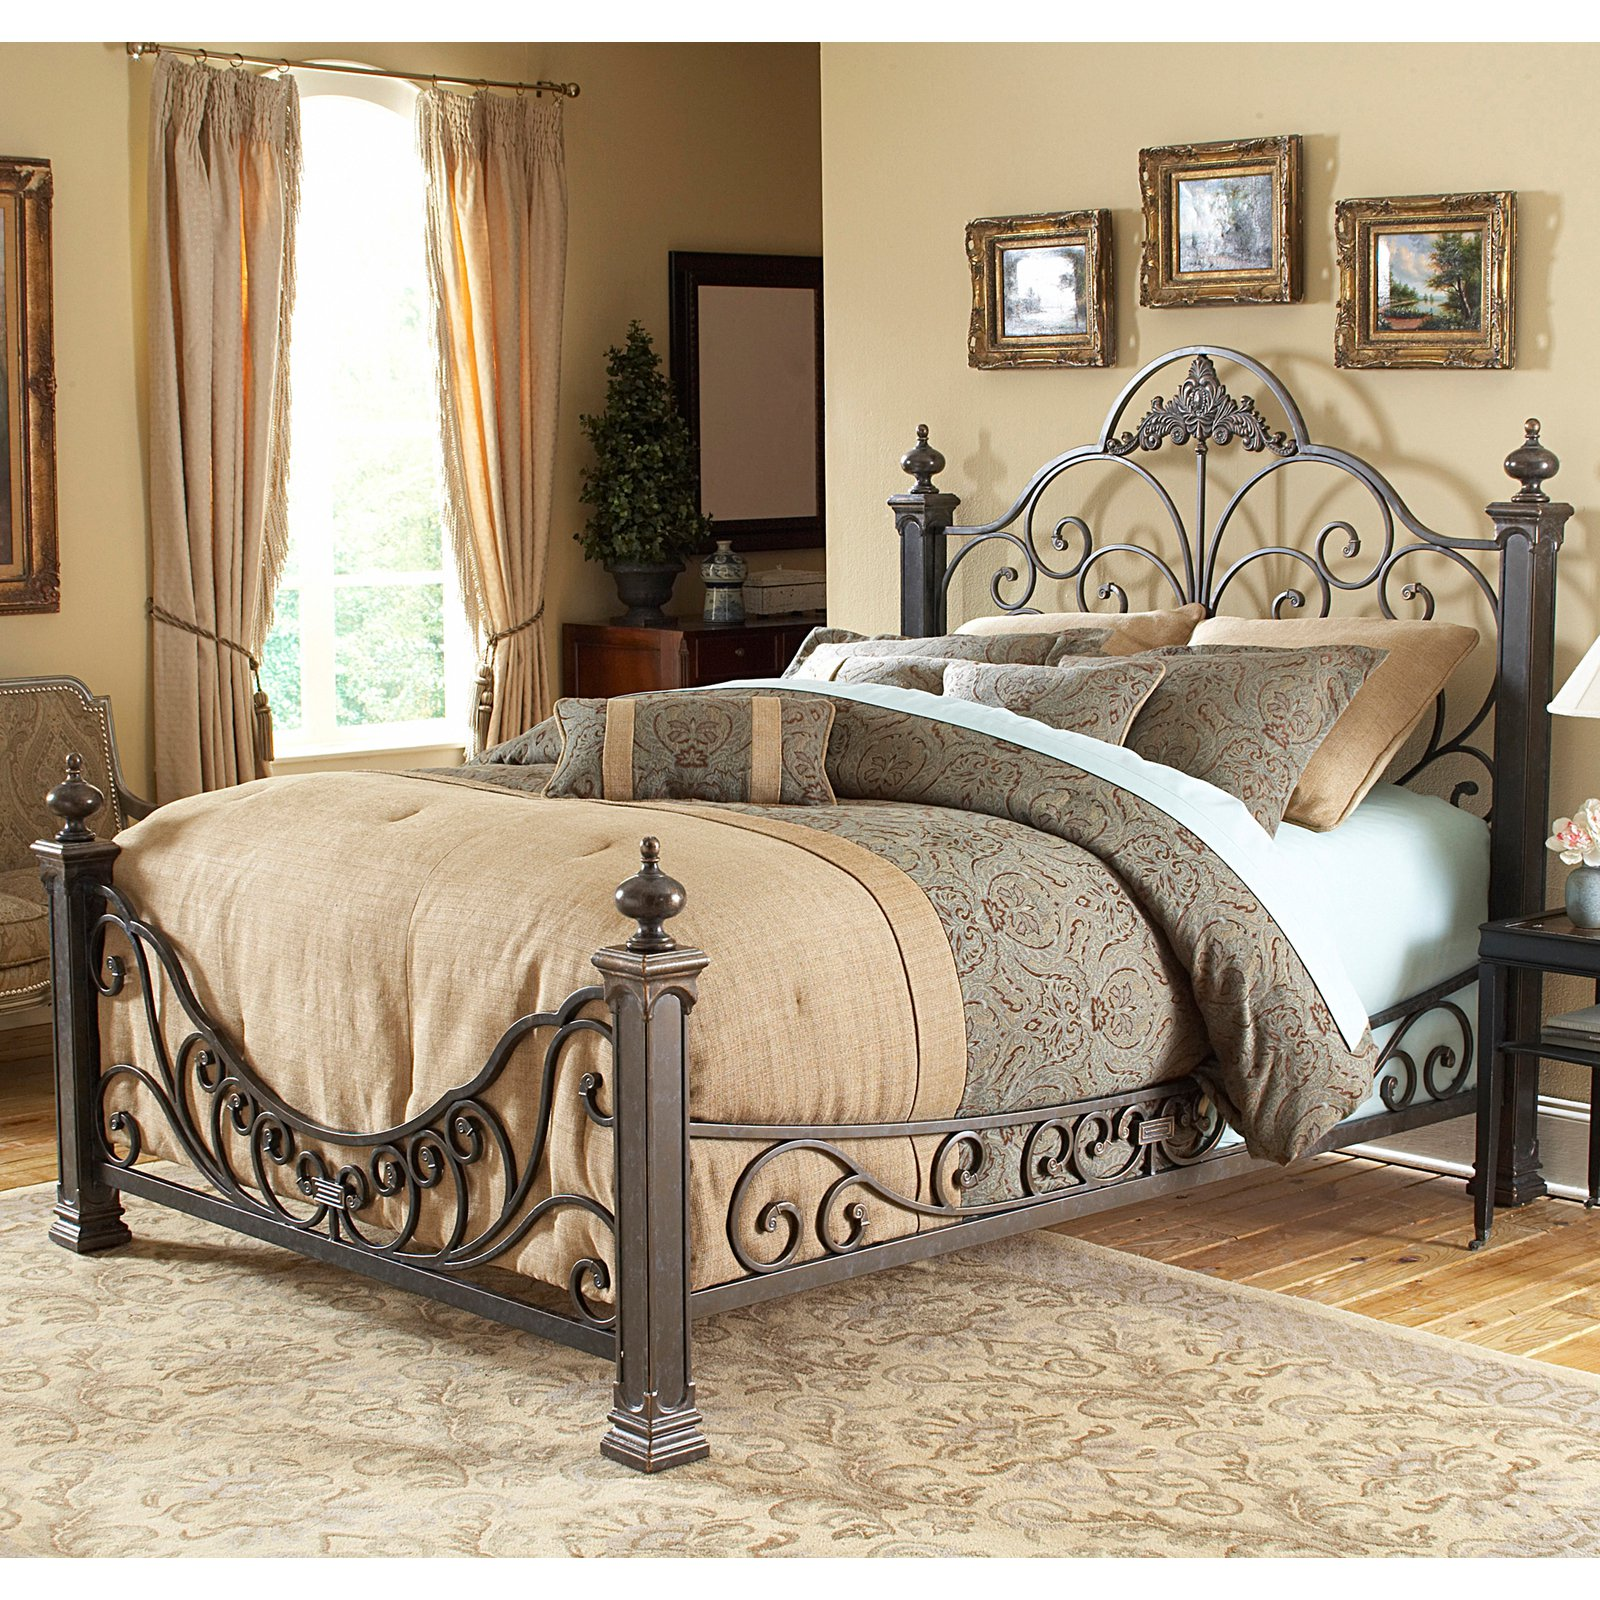 Fashion Bed Group Baroque Metal Poster Bed by Leggett & Platt Fashion Bed